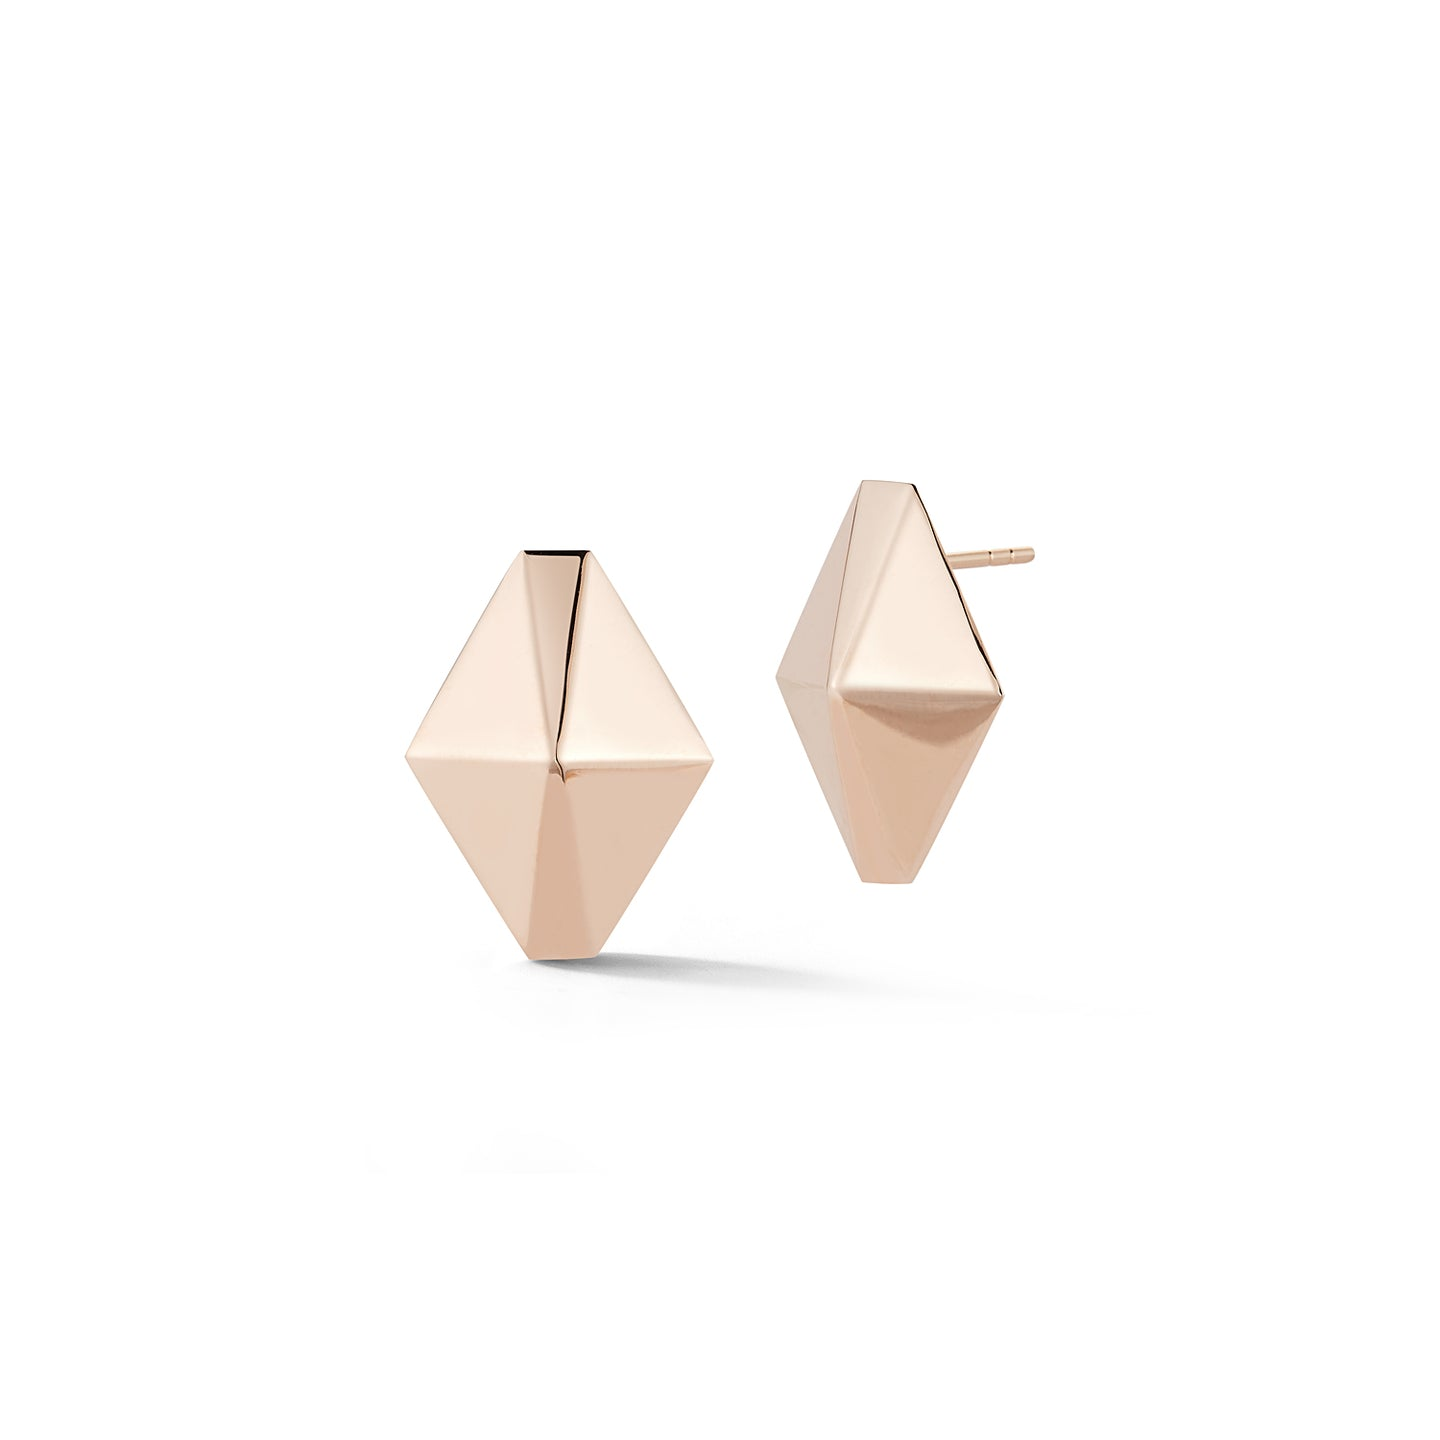 SYDNEY 18K ROSE GOLD LARGE ORIGAMI STUD EARRINGS